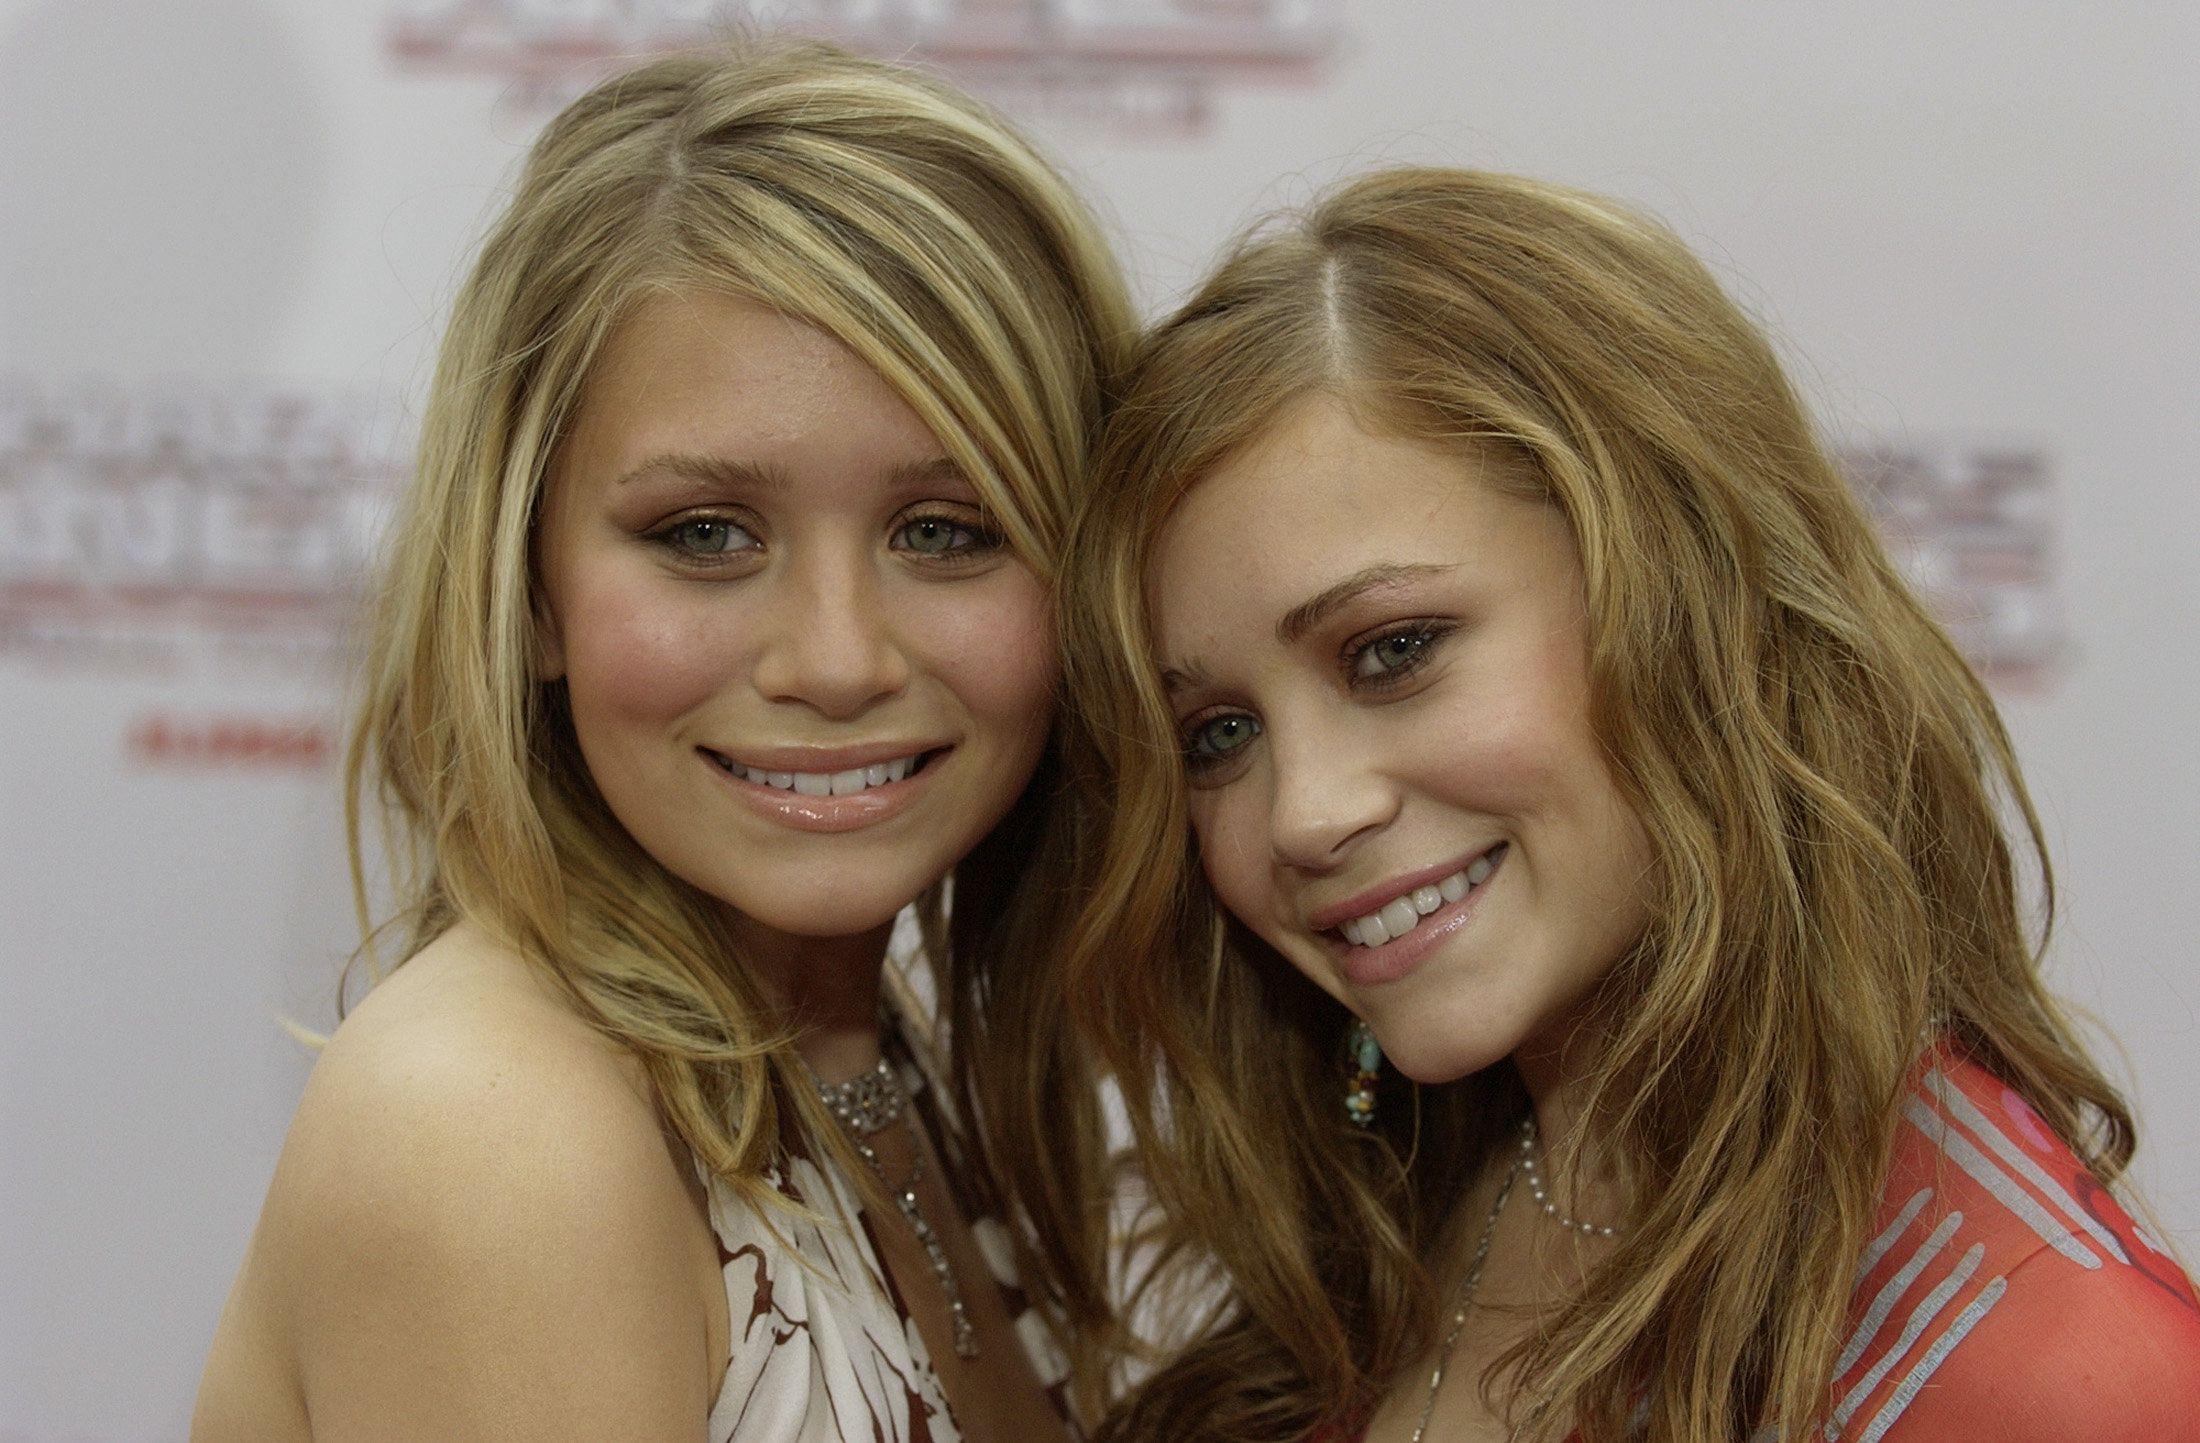 "Actresses Mary-Kate (L) and Ashley Olsen, twin sisters arrive for the premiere of their new film ""Charlie's Angels Full Throttle"" in Hollywood June 18, 2003. The film stars Lucy Liu, Drew Barrymore and Cameron Diaz and opens June 27 in the United States.      PP03060056       REUTERS/Lucy Nicholson  FP/WS"